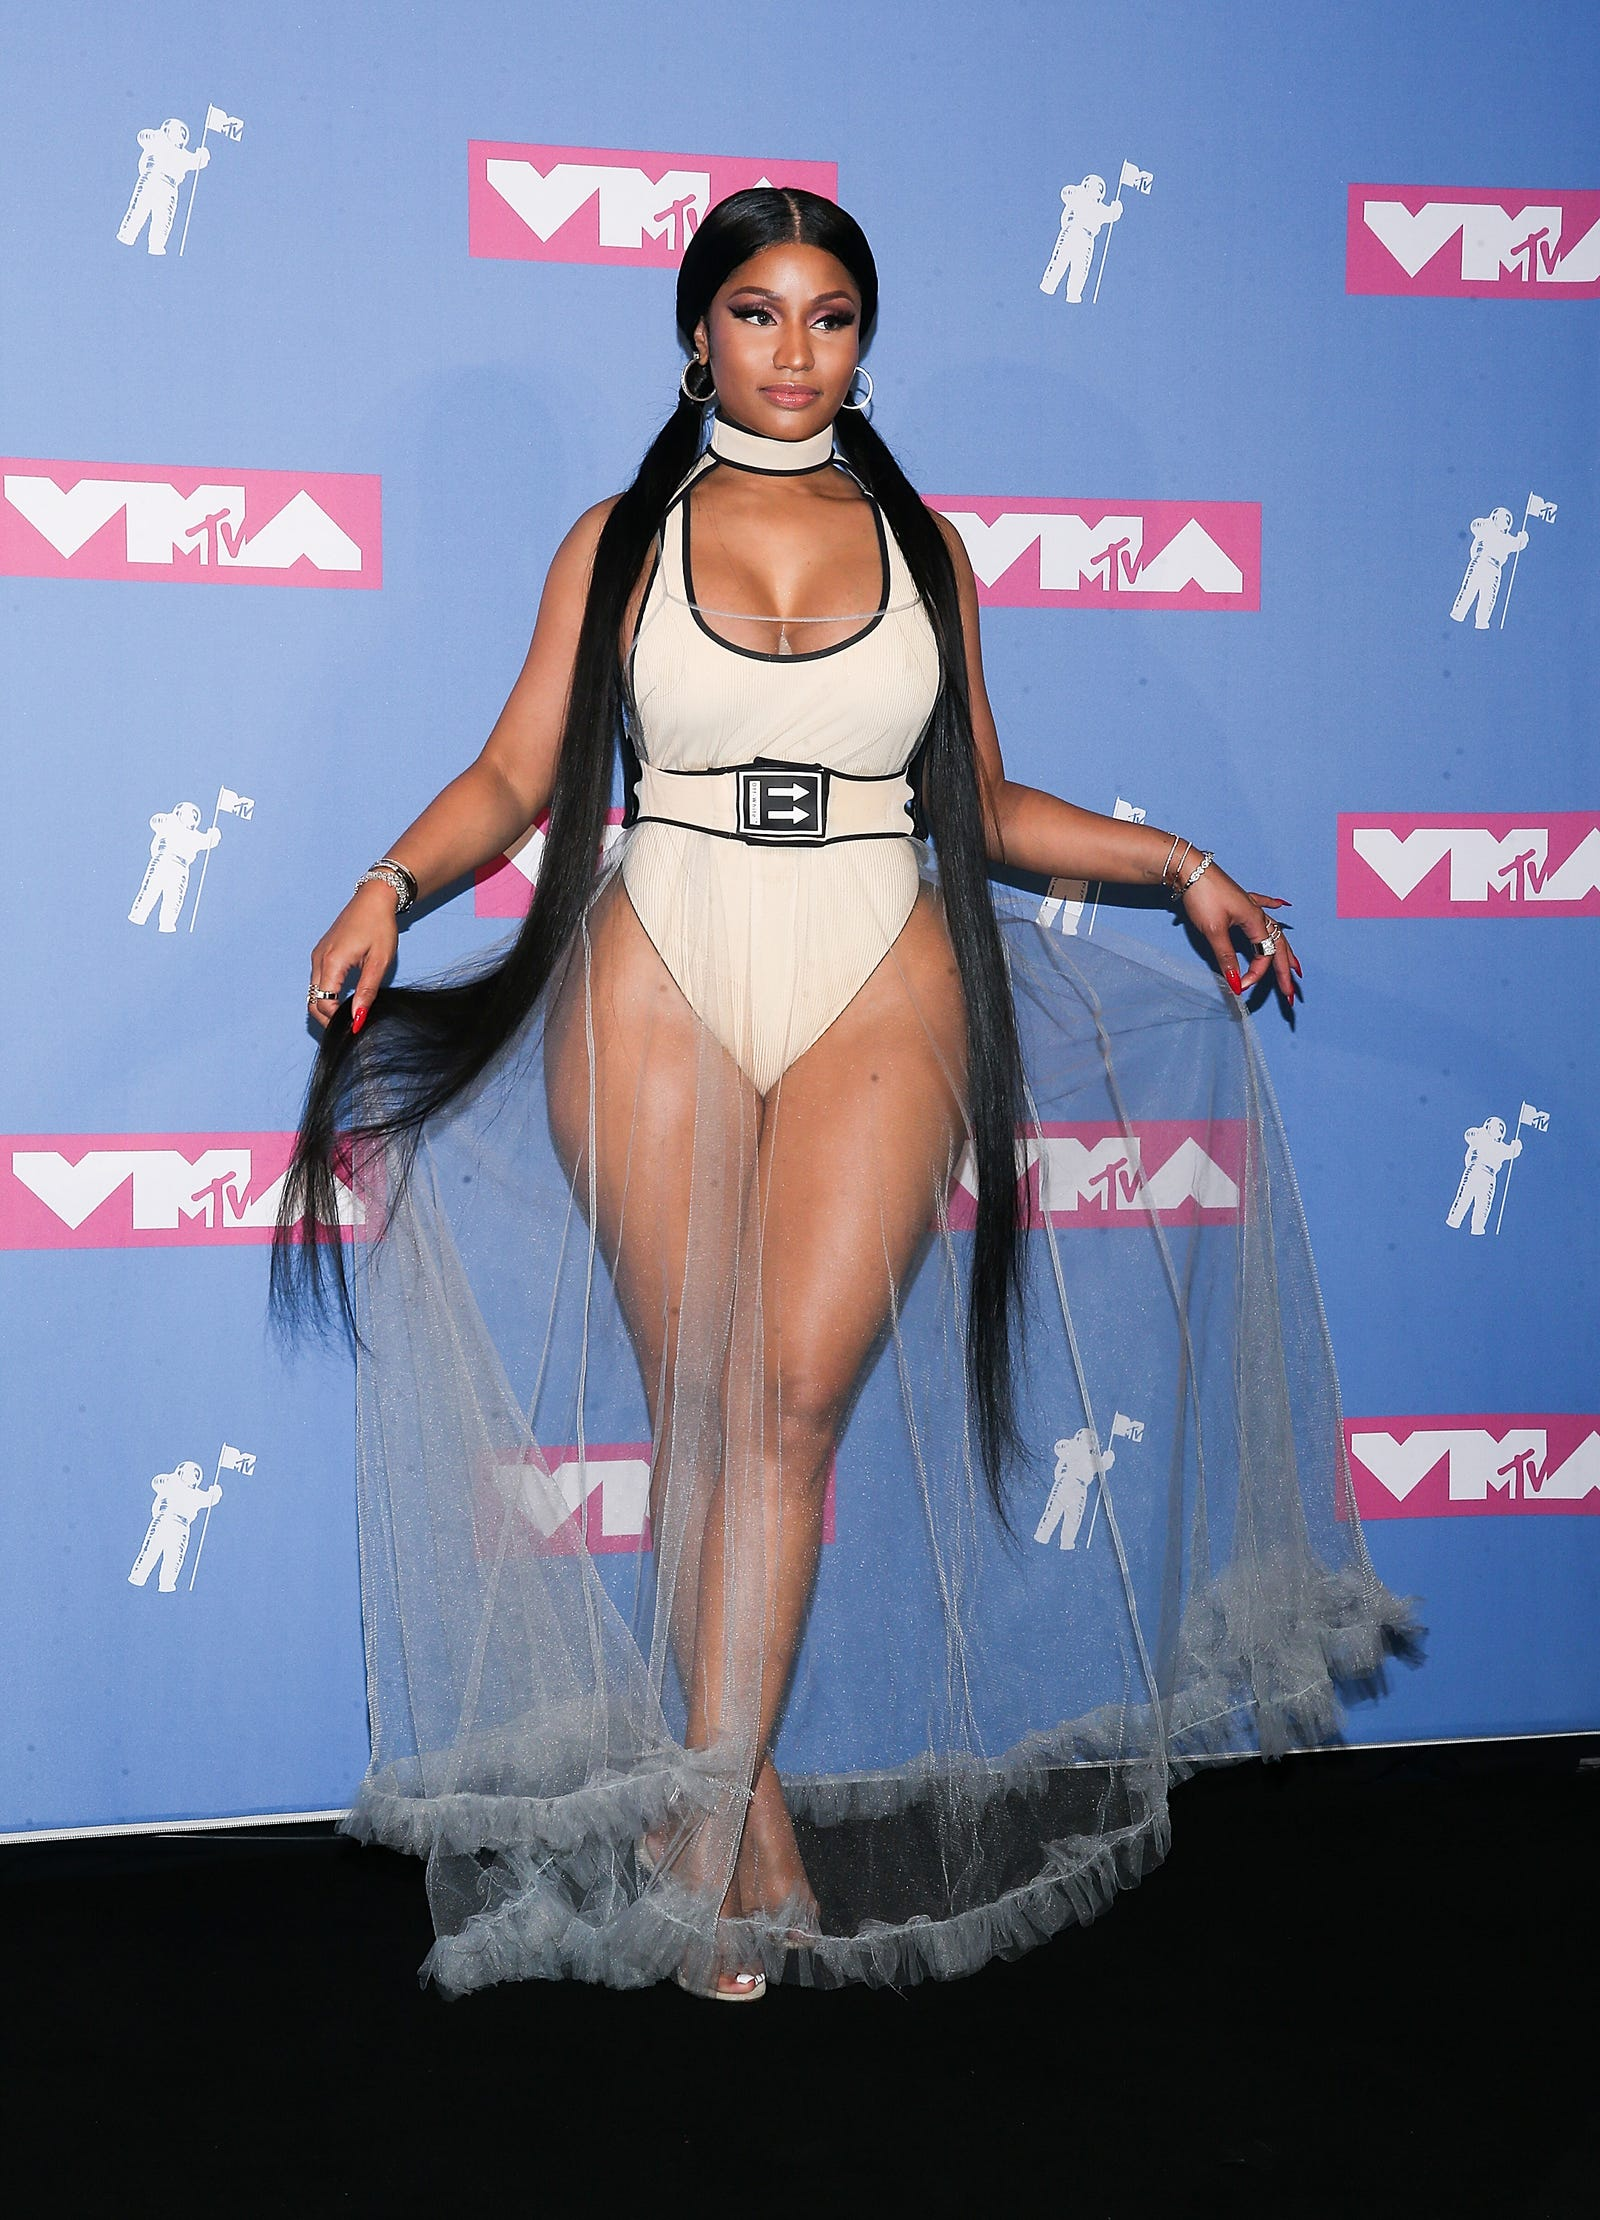 Nicki Minaj poses in Off-White in the press room at the 2018 MTV Video Music Awards at Radio City Music Hall on August 20, 2018 in New York City.